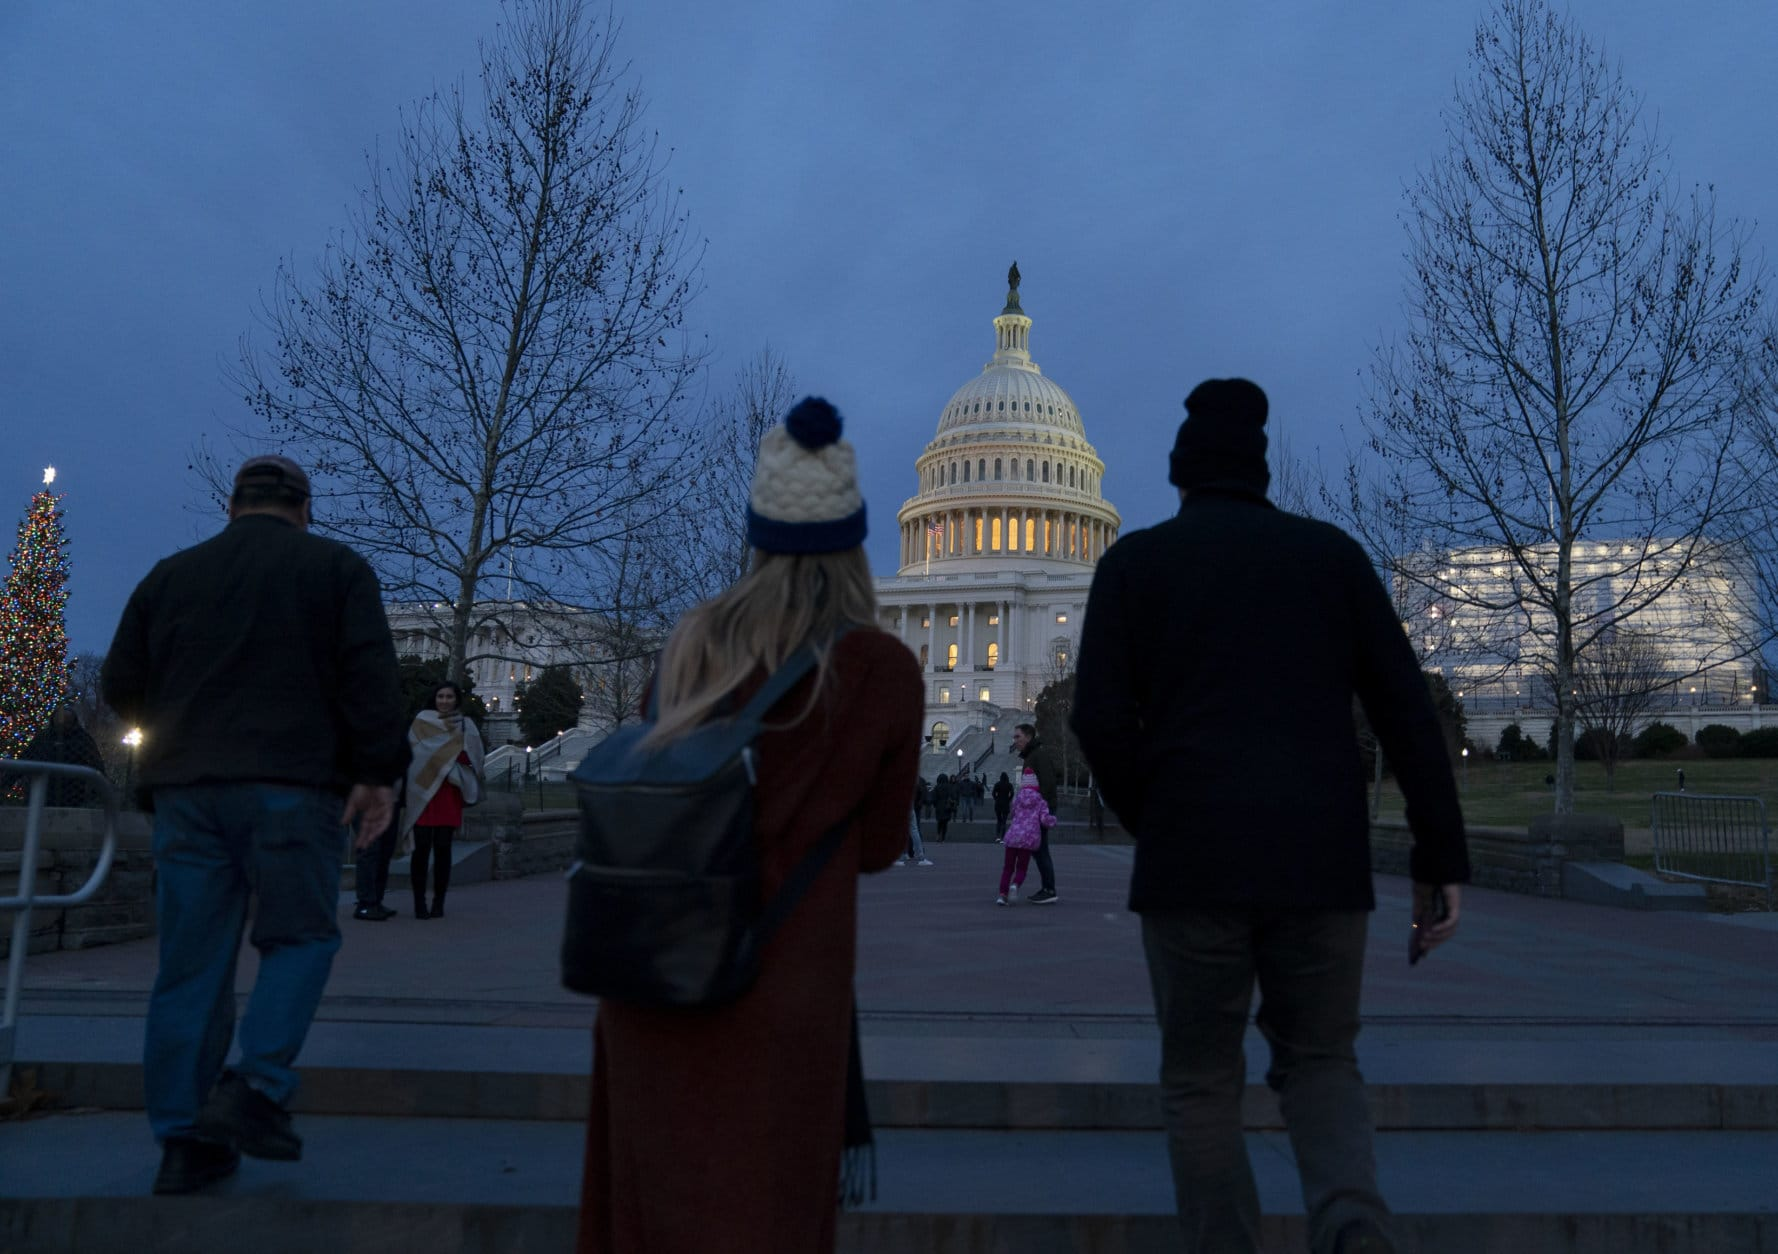 The Capitol is seen as New Year's Day comes to a close with the partial government shutdown in its second week, in Washington, Tuesday, Jan. 1, 2019. The new House majority led by Democrat Nancy Pelosi gavels into session this week with legislation ready to end the government shutdown. (AP Photo/J. Scott Applewhite)